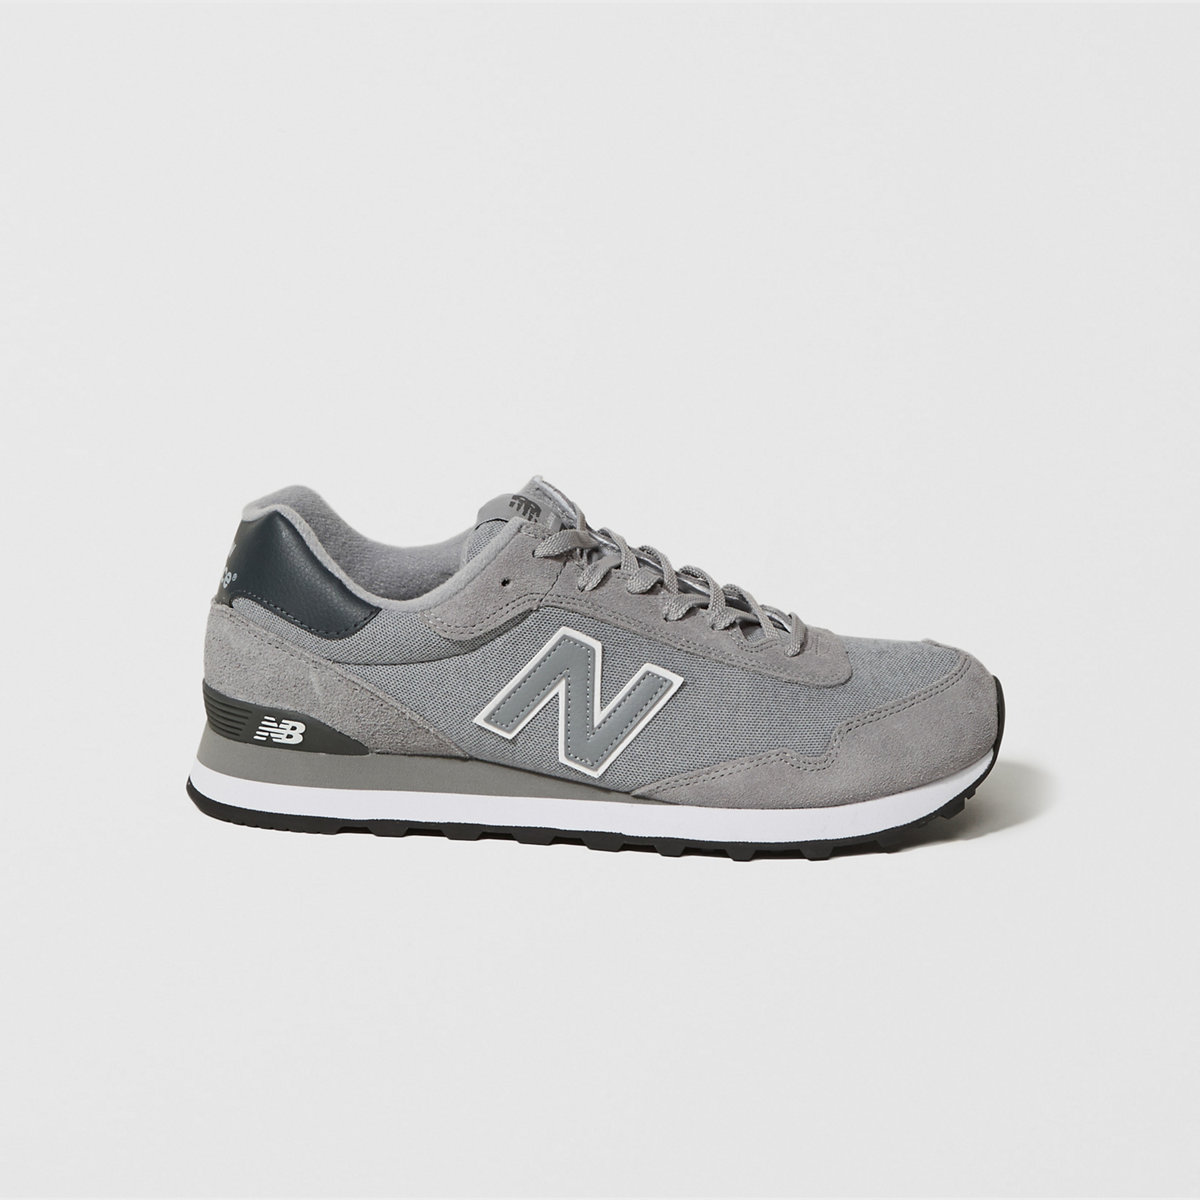 New Balance 515 Sneakers